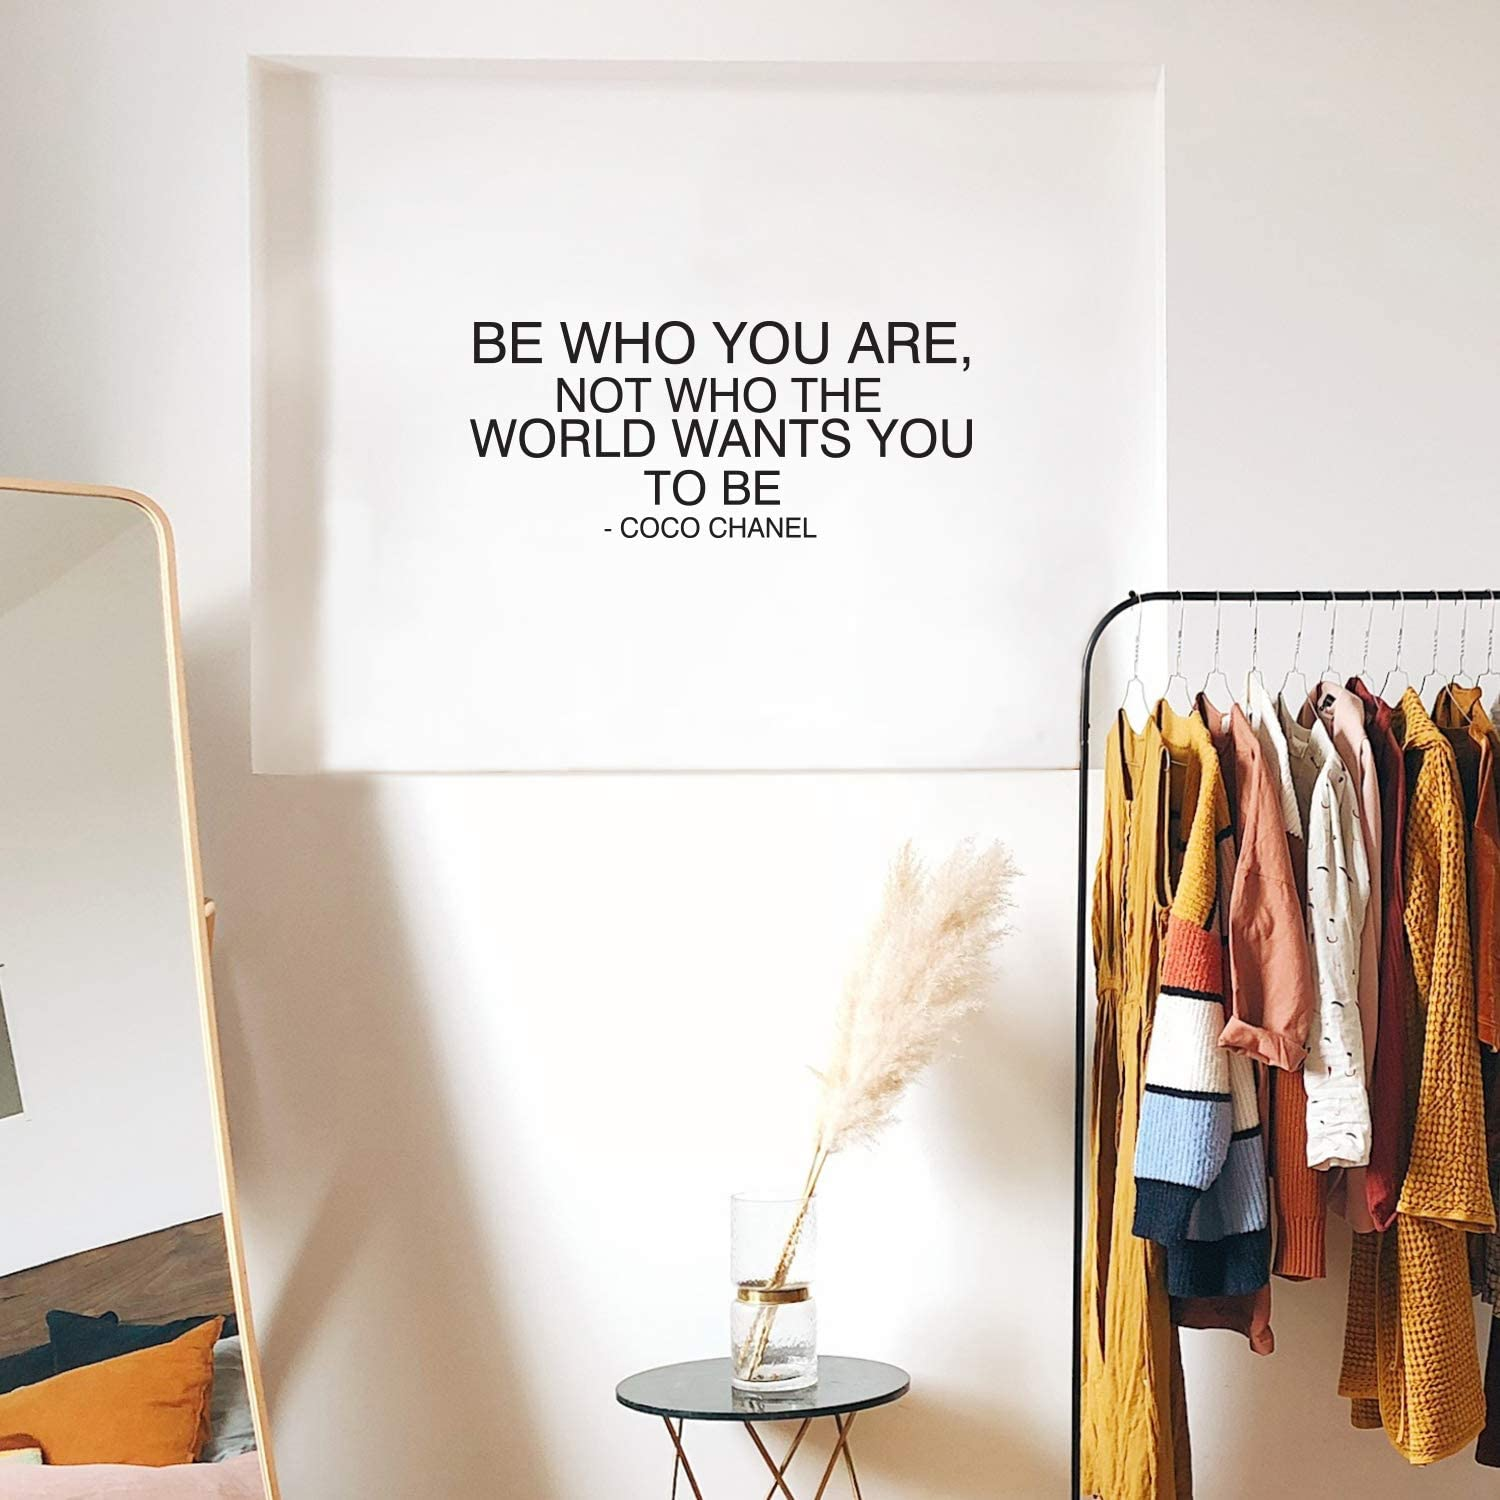 Amazon Com Vinyl Wall Art Decal Be Who You Are Not Who The World Wants You To Be 14 X 32 5 Trendy Inspirational Quote For Home Bedroom Living Room Office Work